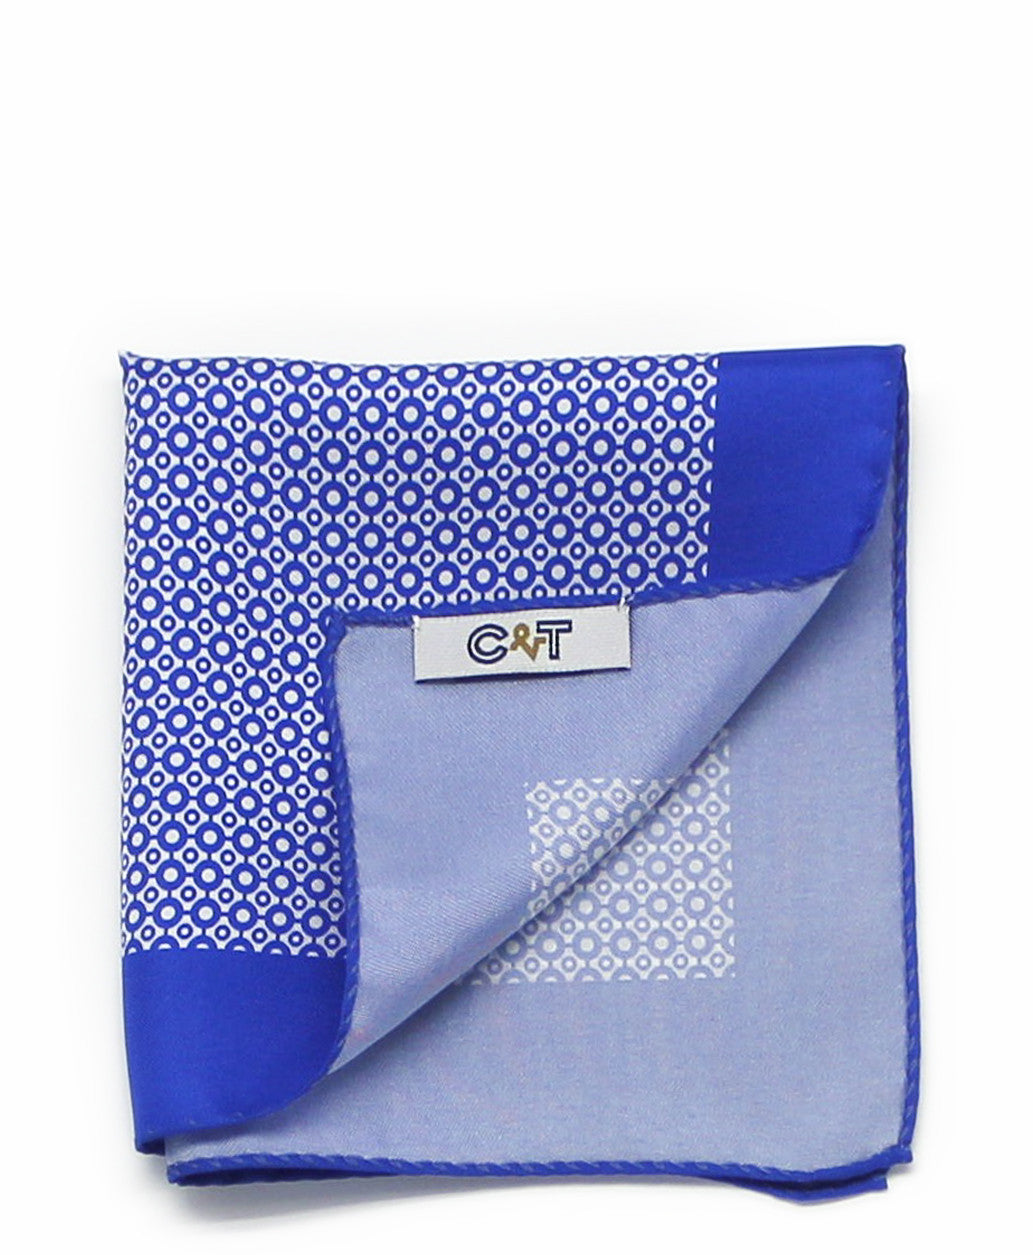 C&T Silk Pockerchief | Blue Cincture